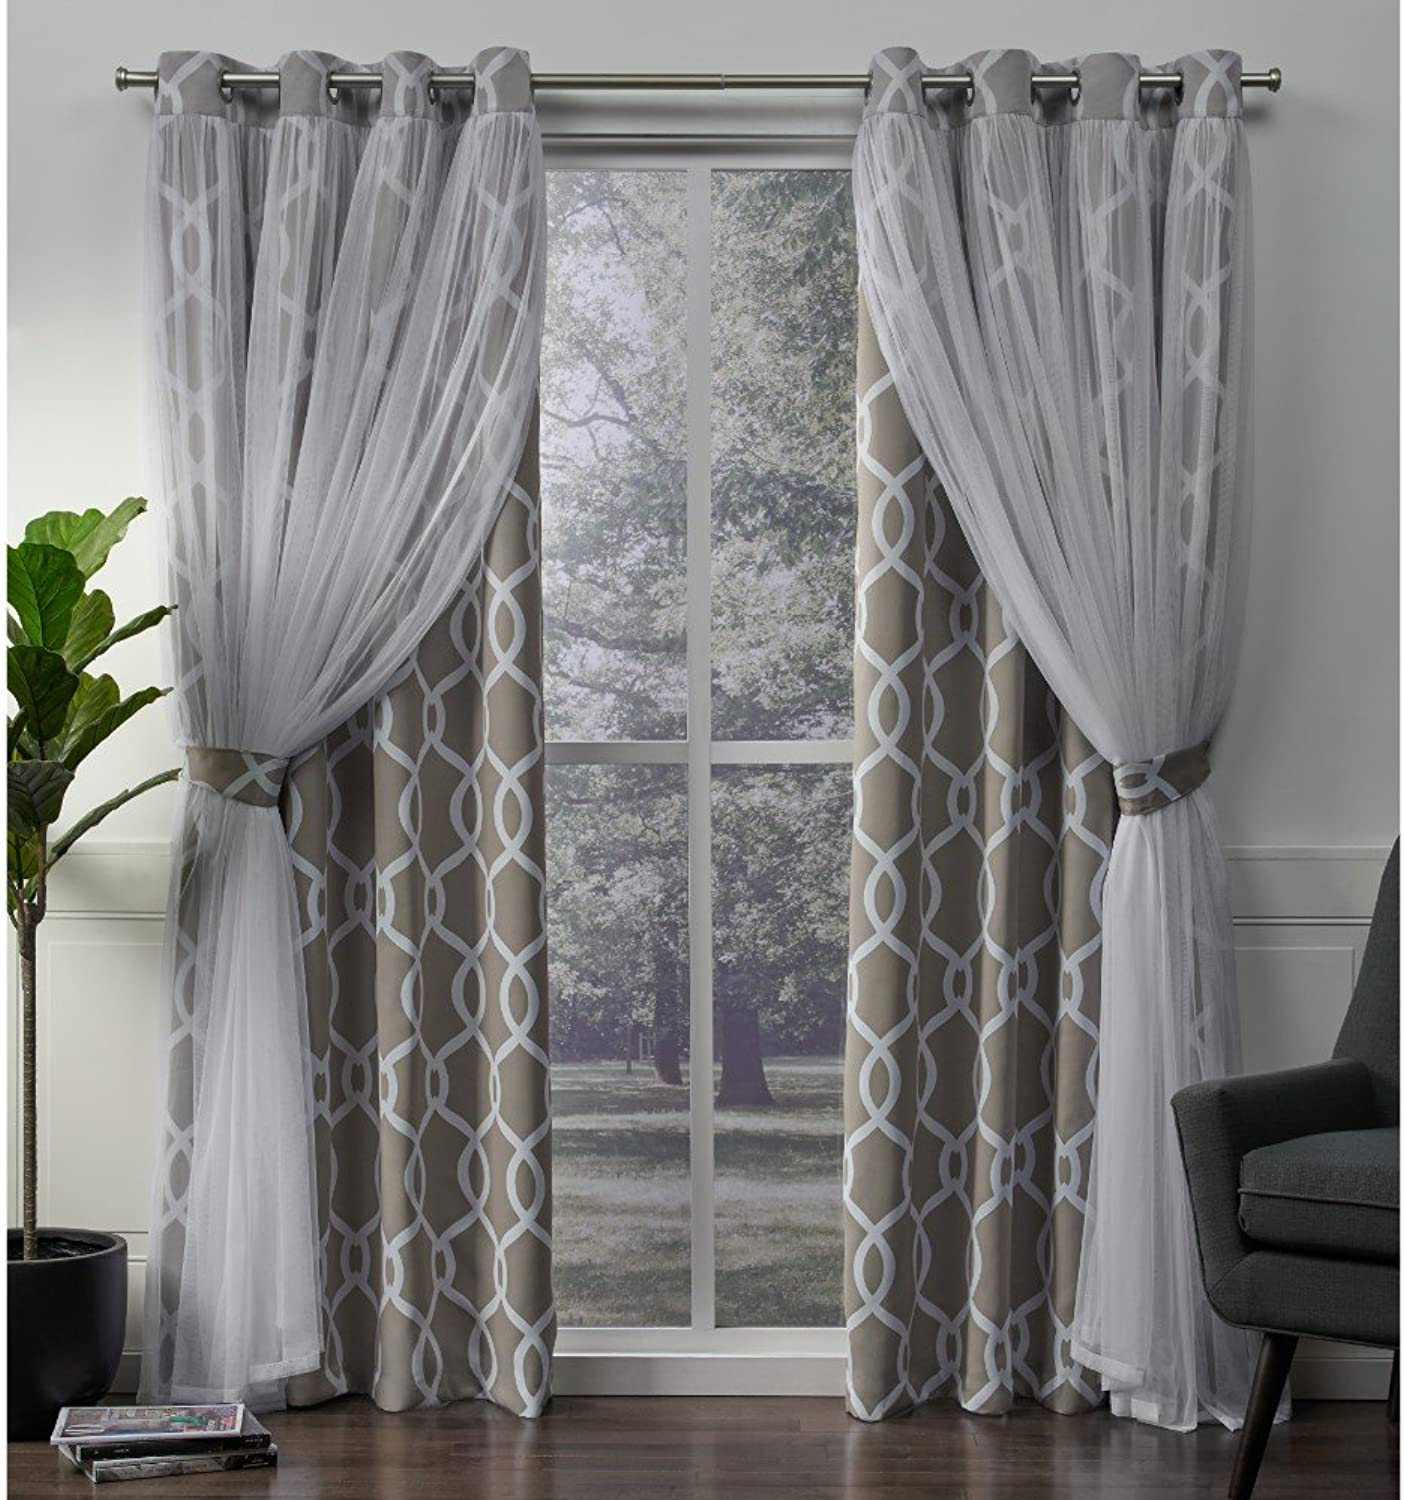 Exclusive Home Curtains Carmela Layered Geometric Blackout and Sheer Window Curtain Panel Pair with Grommet Top, 52x84, Natural, 2 Piece